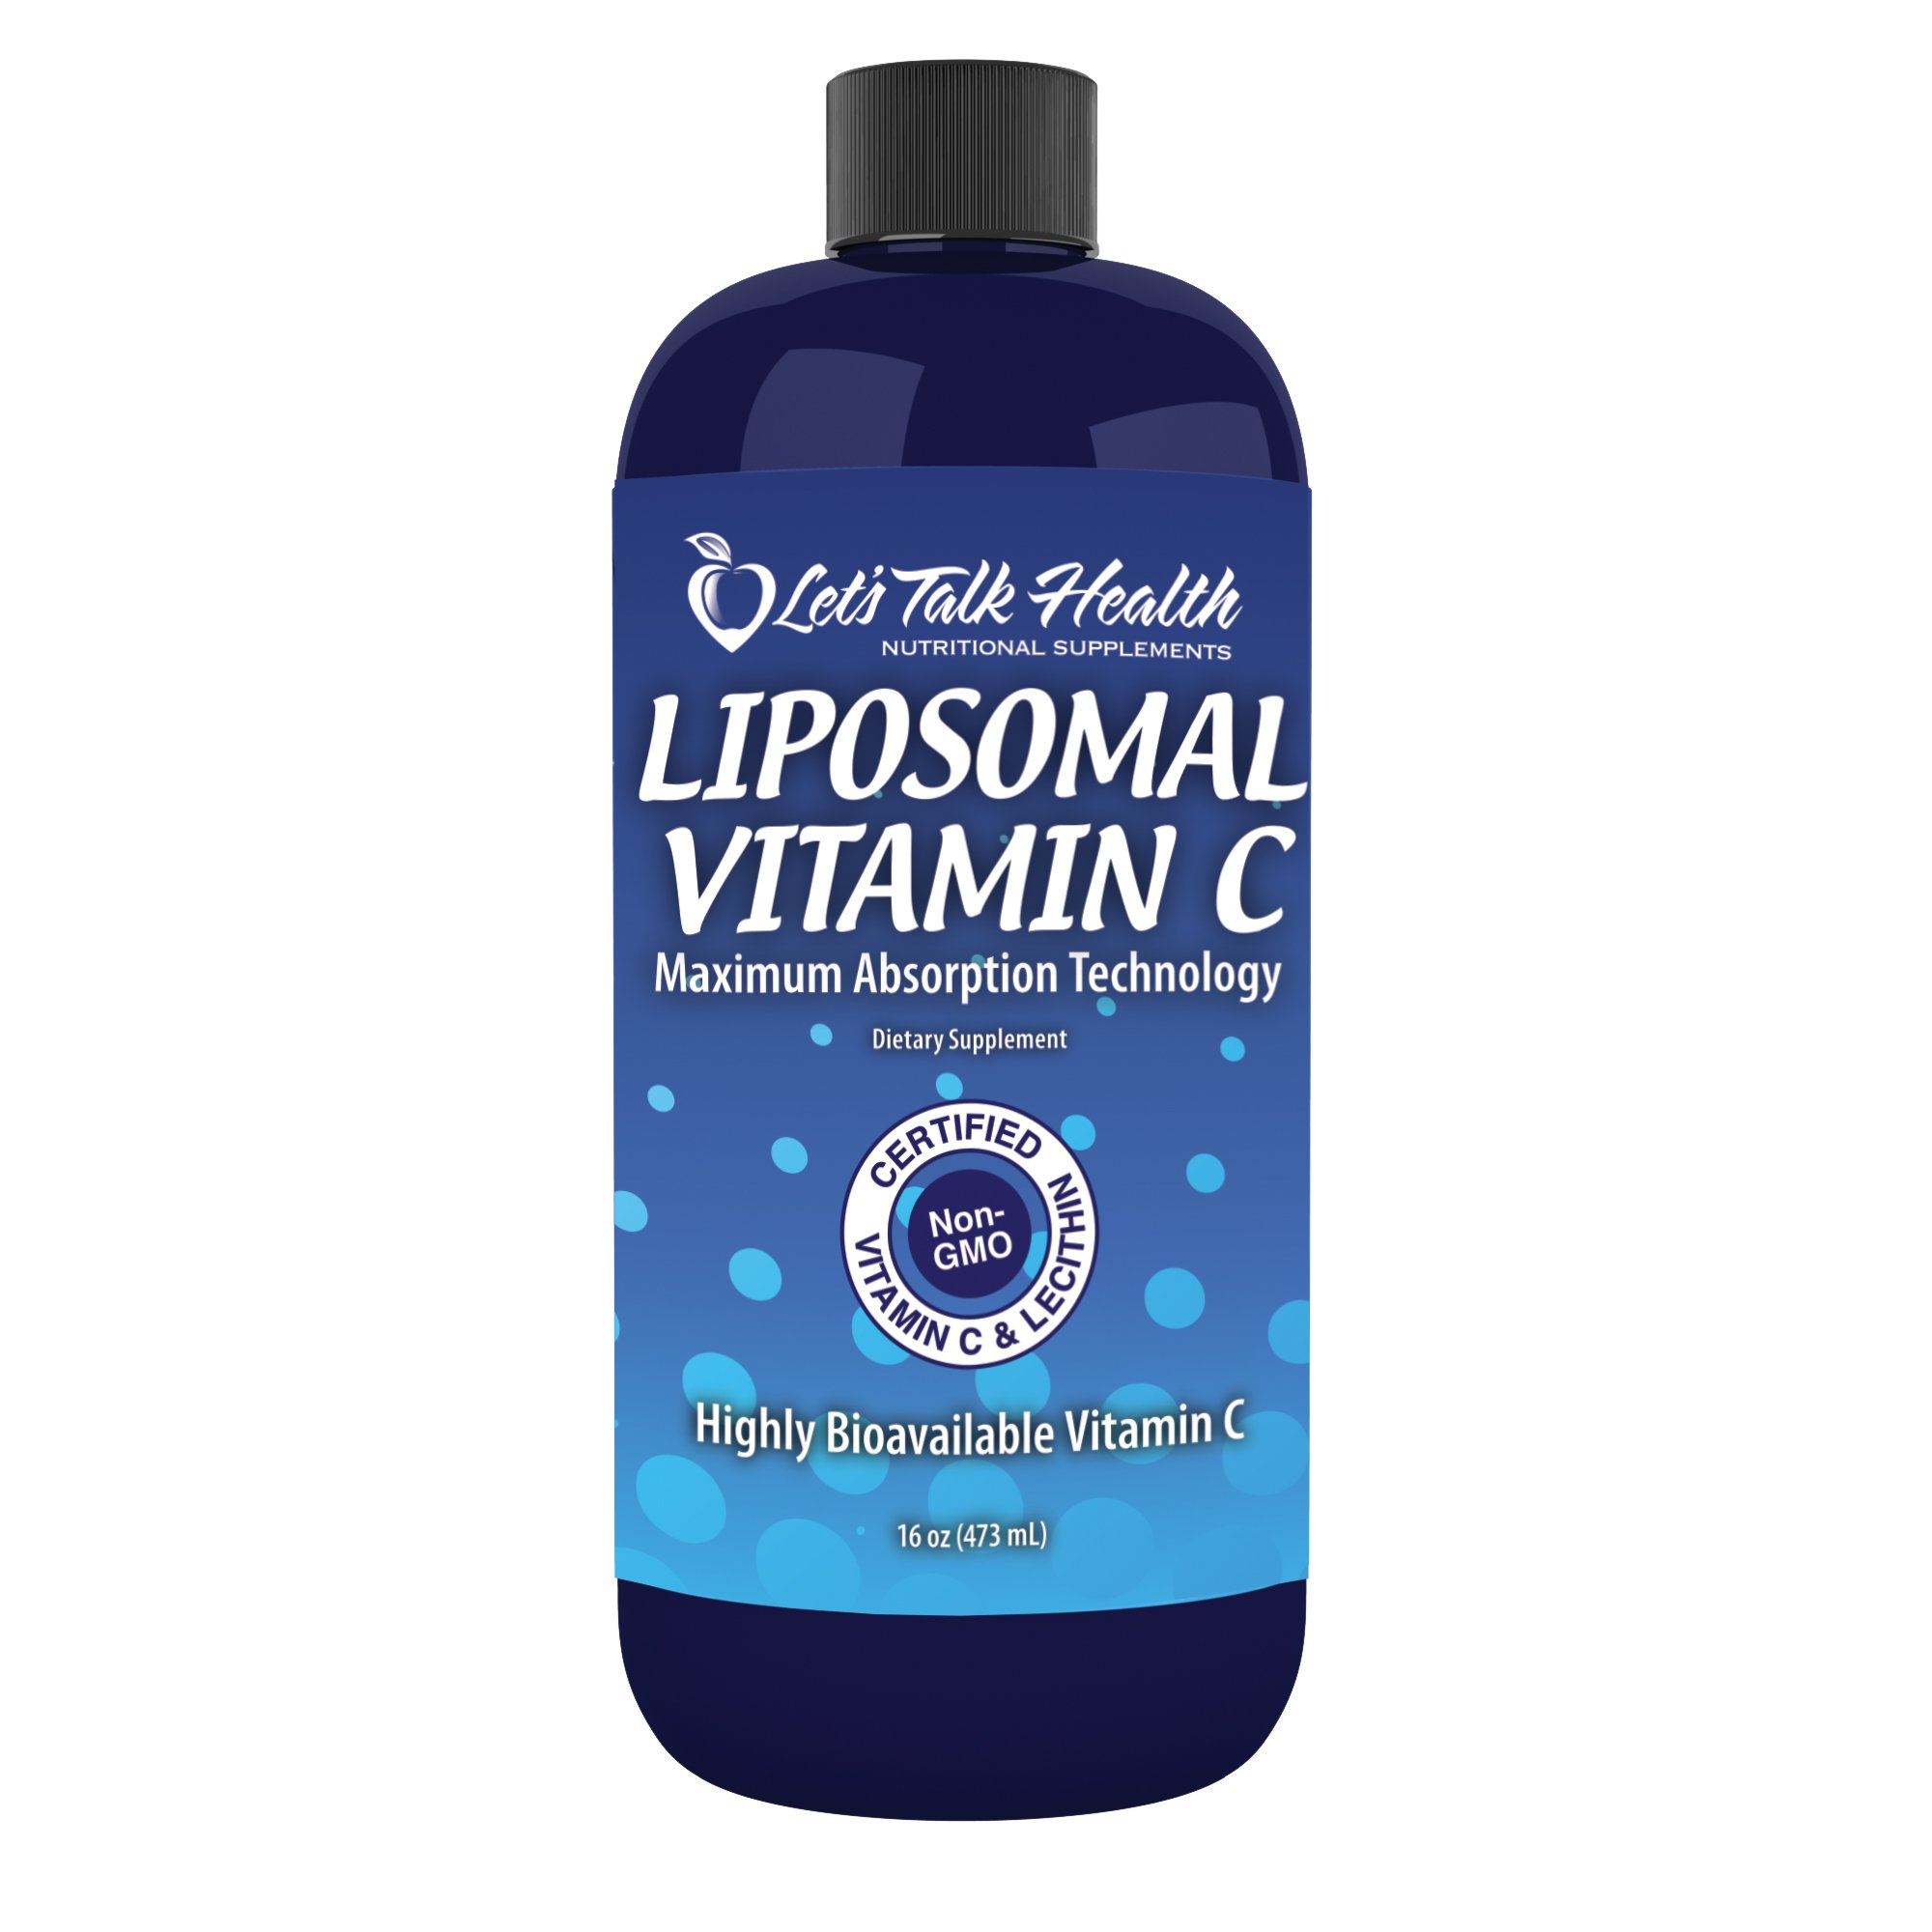 Let's Talk Health Liposomal Vitamin C - 100% Certified Non-GMO & Superior Absorption of Vitamin C (16oz) by Let's Talk Health (Image #1)